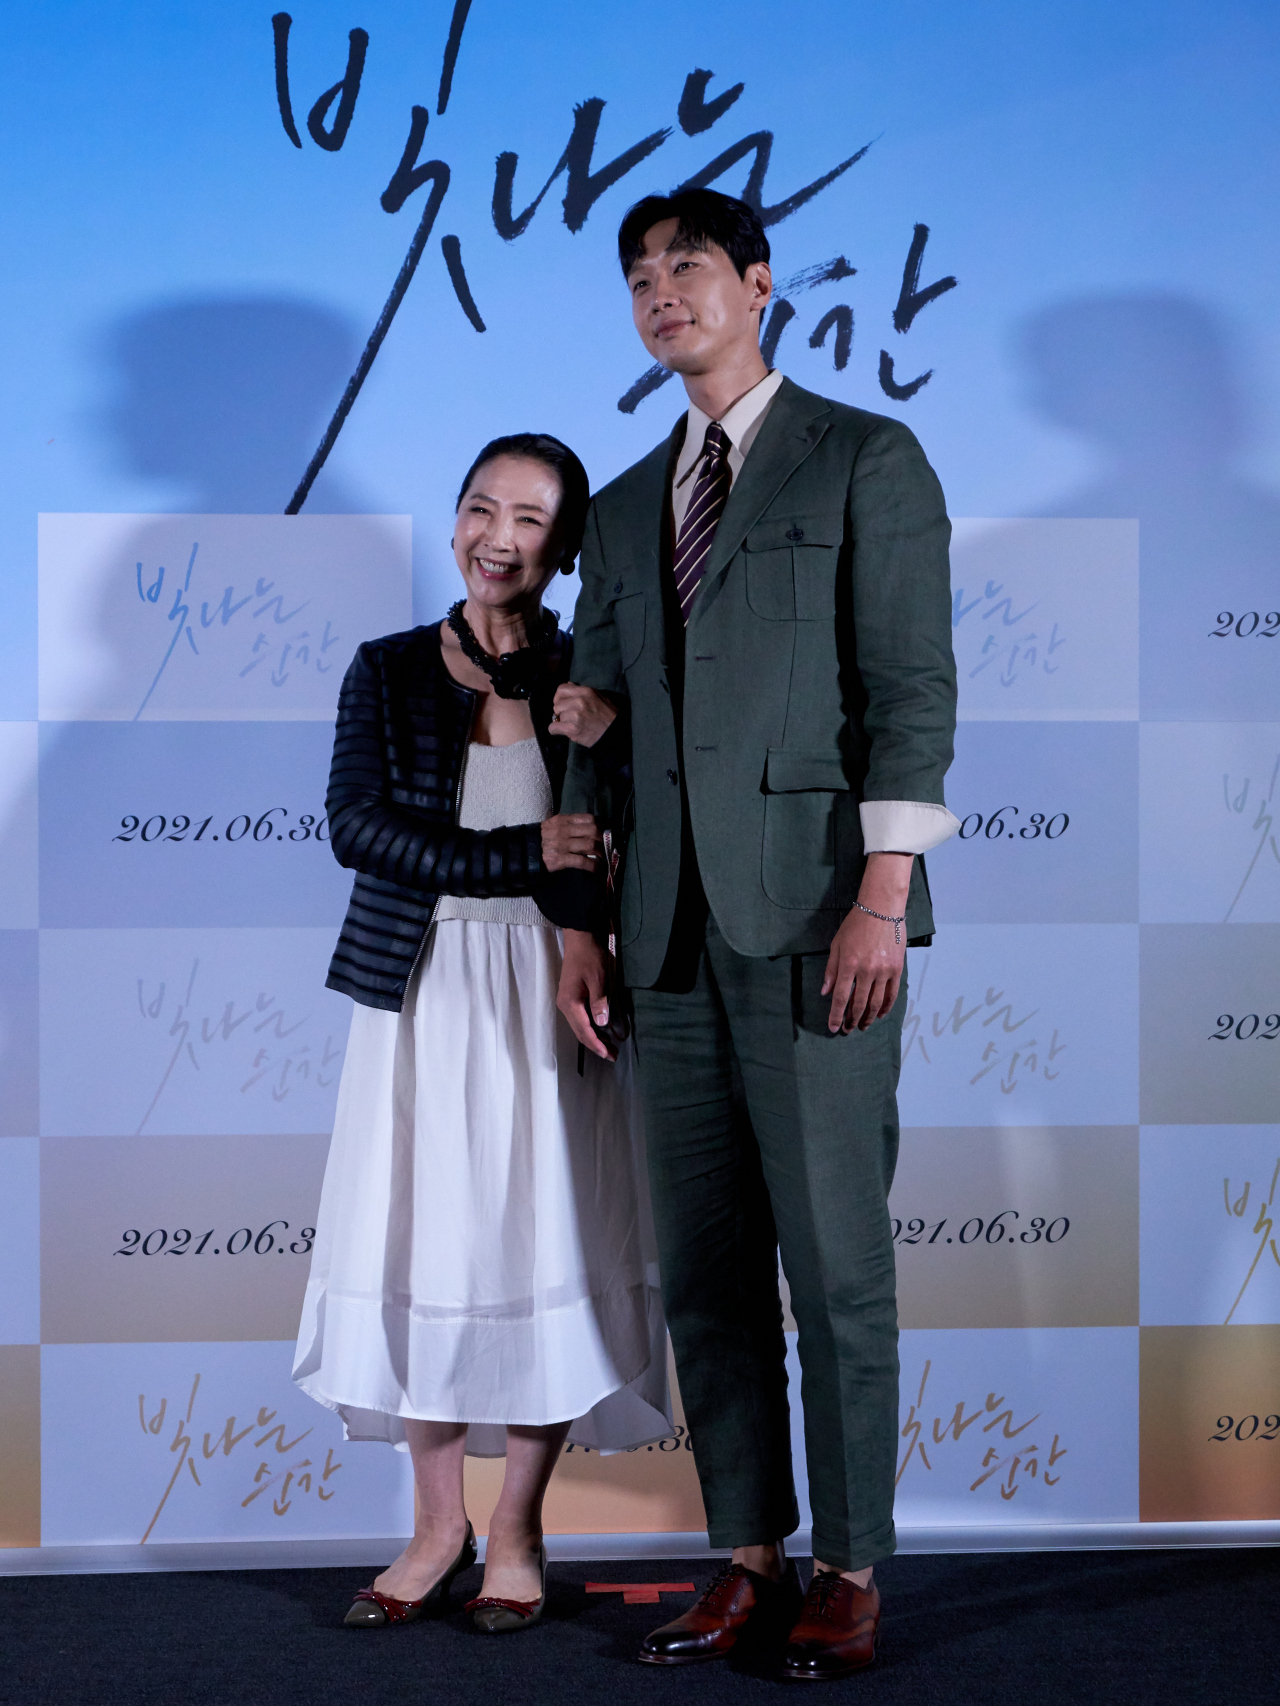 Actors Go Doo-shim (left) and Ji Hyun-woo pose for photographs after a press conference held at CGV Yongsan in central Seoul on Monday. (Myung Film)